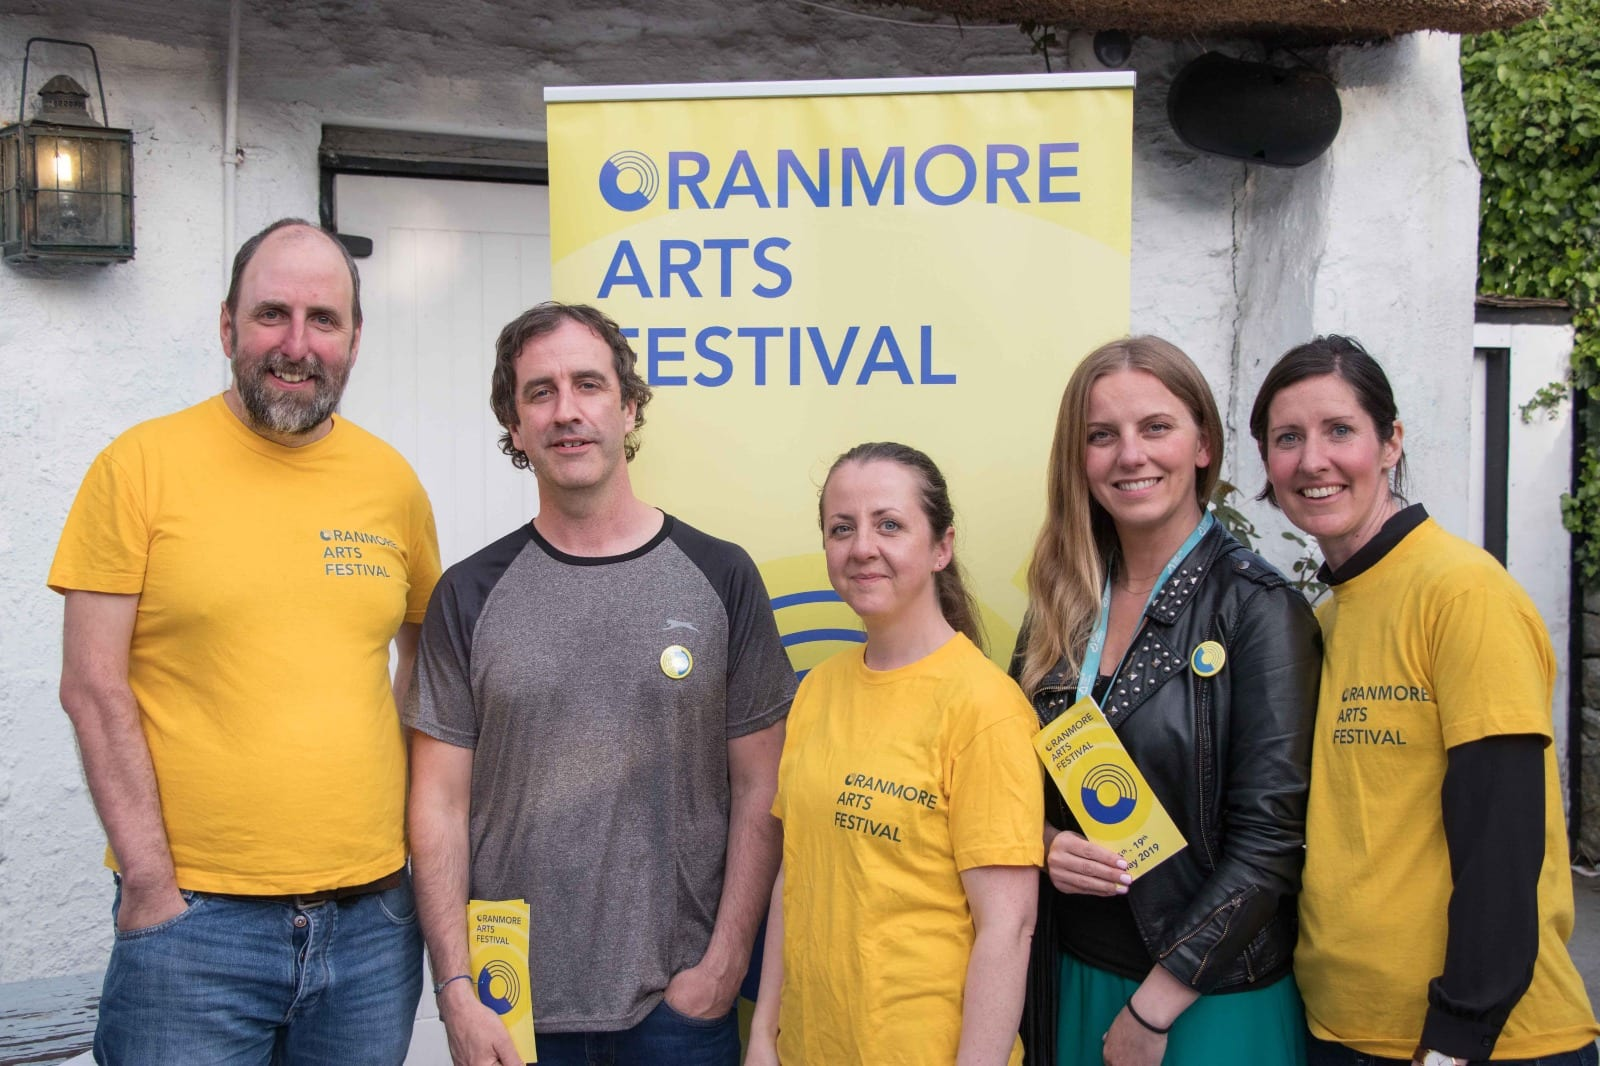 World class music and family fun at Oranmore Arts Festival